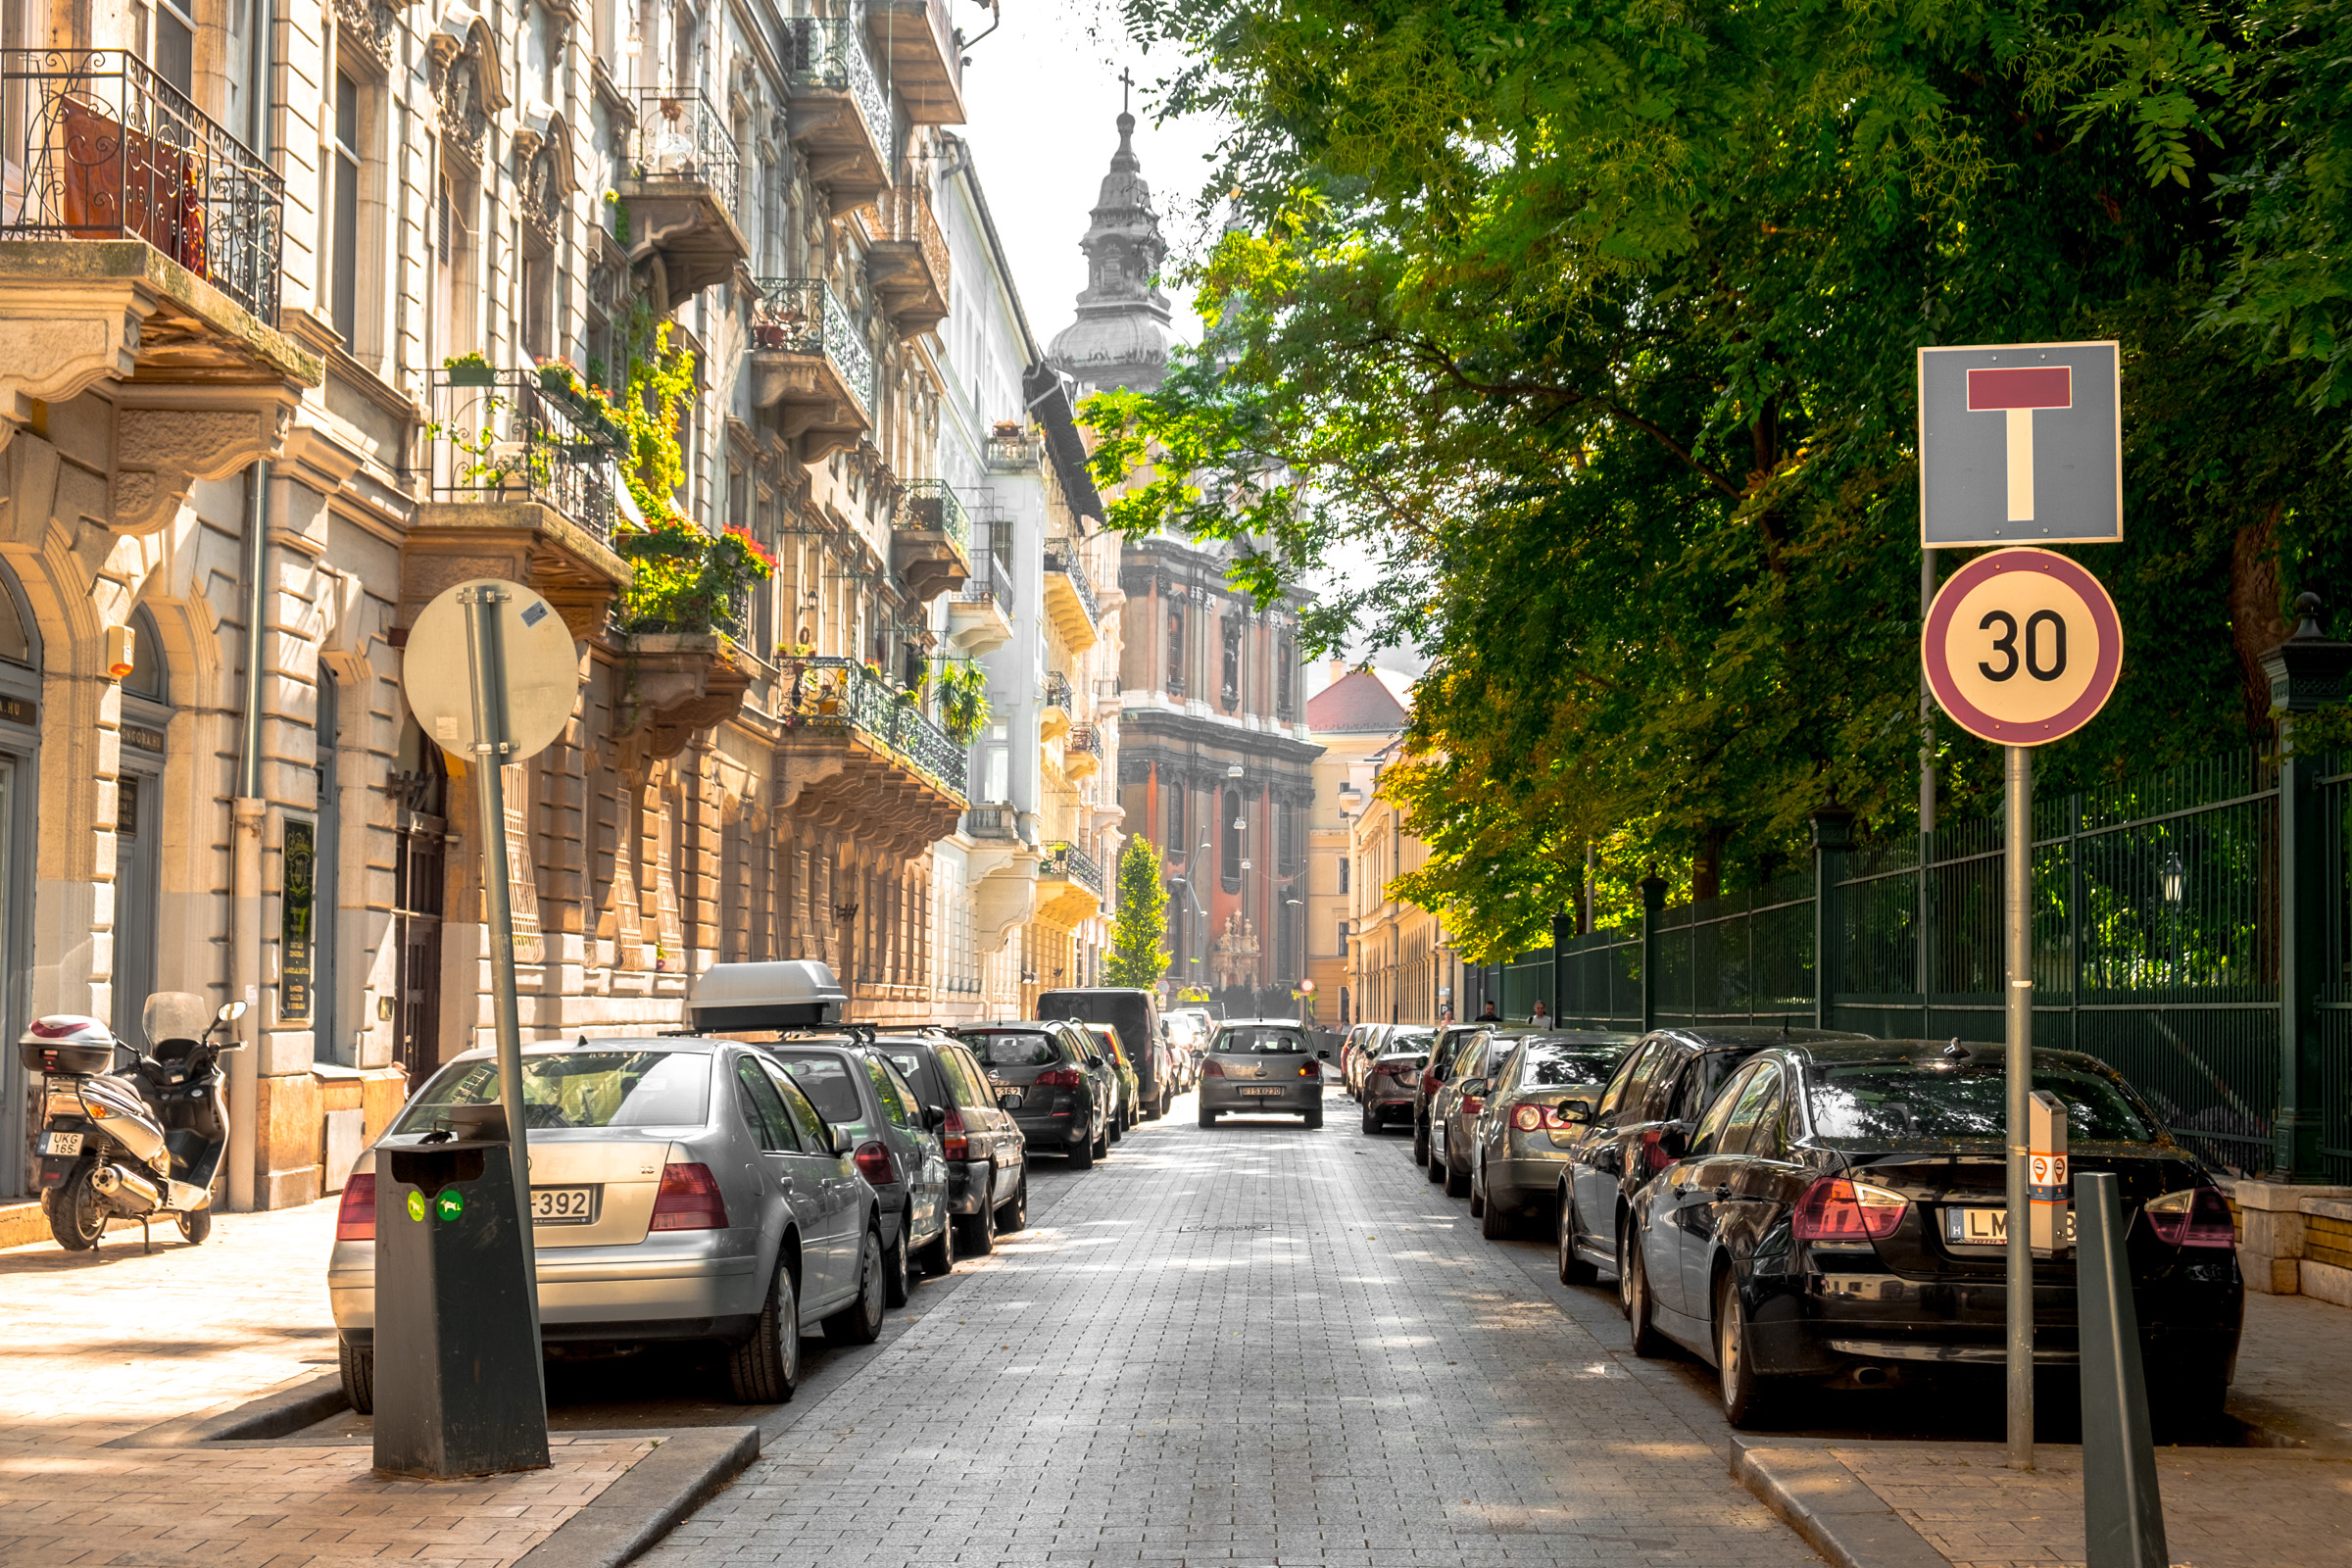 Sunny Street in Budapest, Hungary